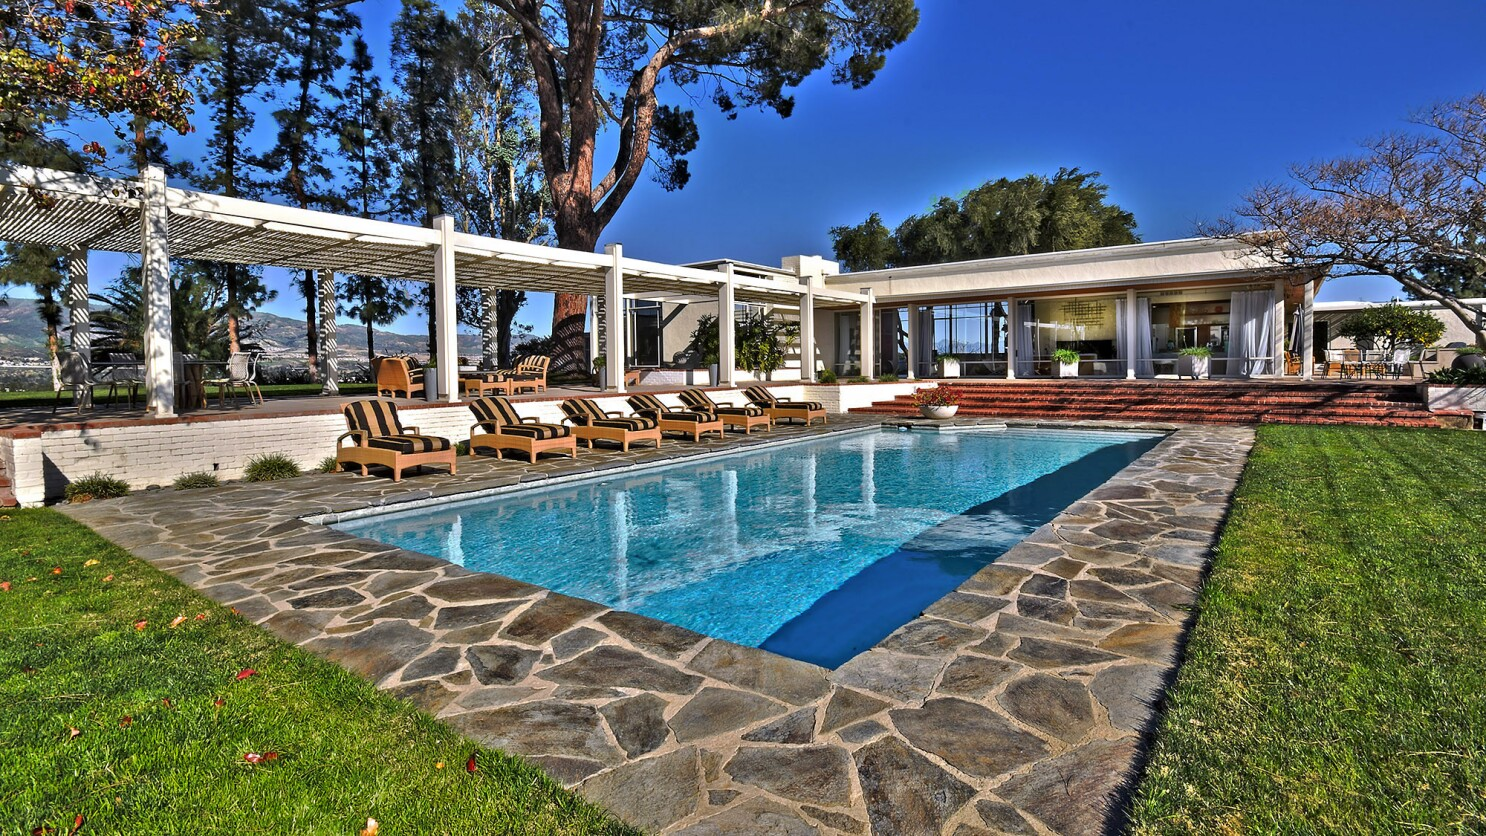 Snazzy Chatsworth Estate Where Sinatra Lived Shoots For 12 5 Million Los Angeles Times